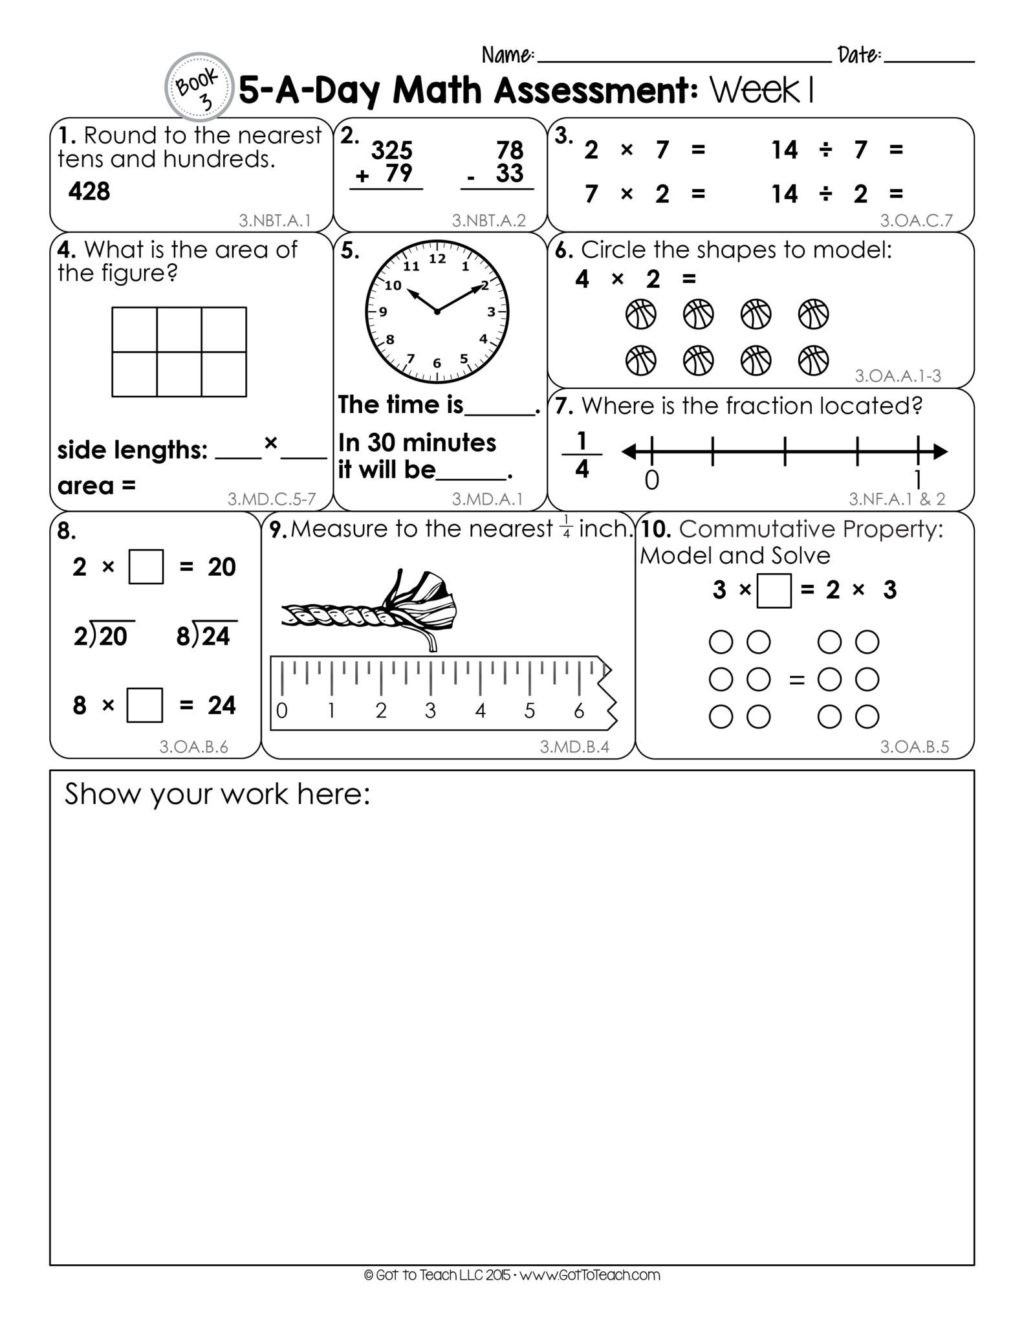 Distributive Property 4th Grade Worksheets Worksheet Printable Third Grade Worksheets Work Packets